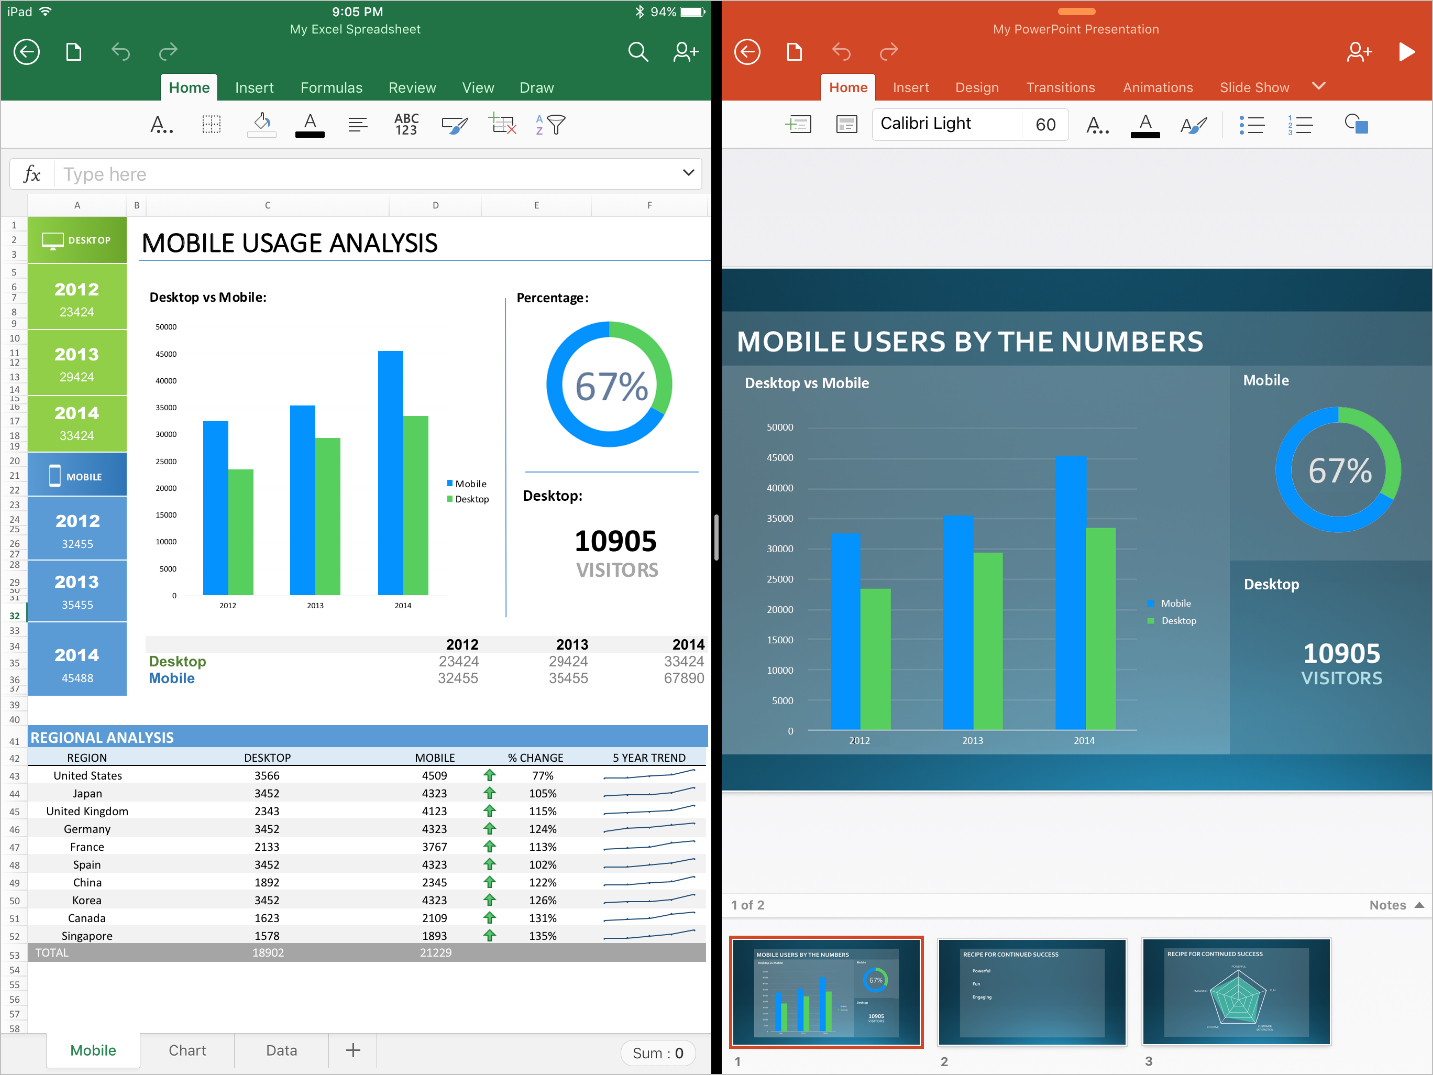 Microsoft Office Apps Are Ready For The Ipad Pro   Microsoft 365 Blog Inside Spreadsheet For Ipad Compatible With Excel